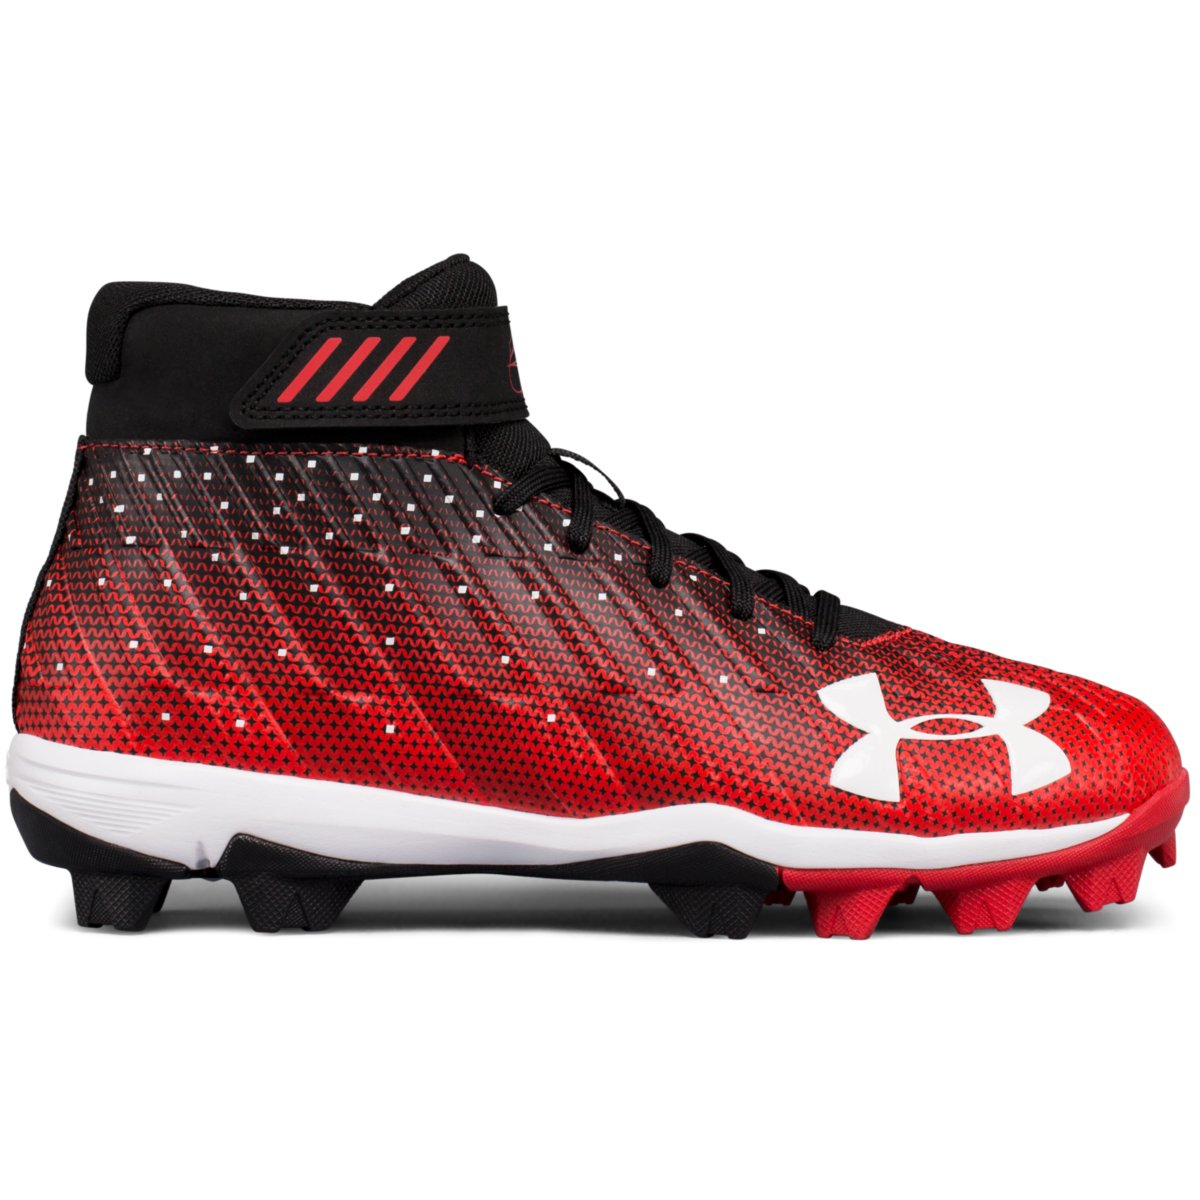 f80f92d88136 Details about Boy's Under Armour Harper 2 RM Jr Baseball Cleat